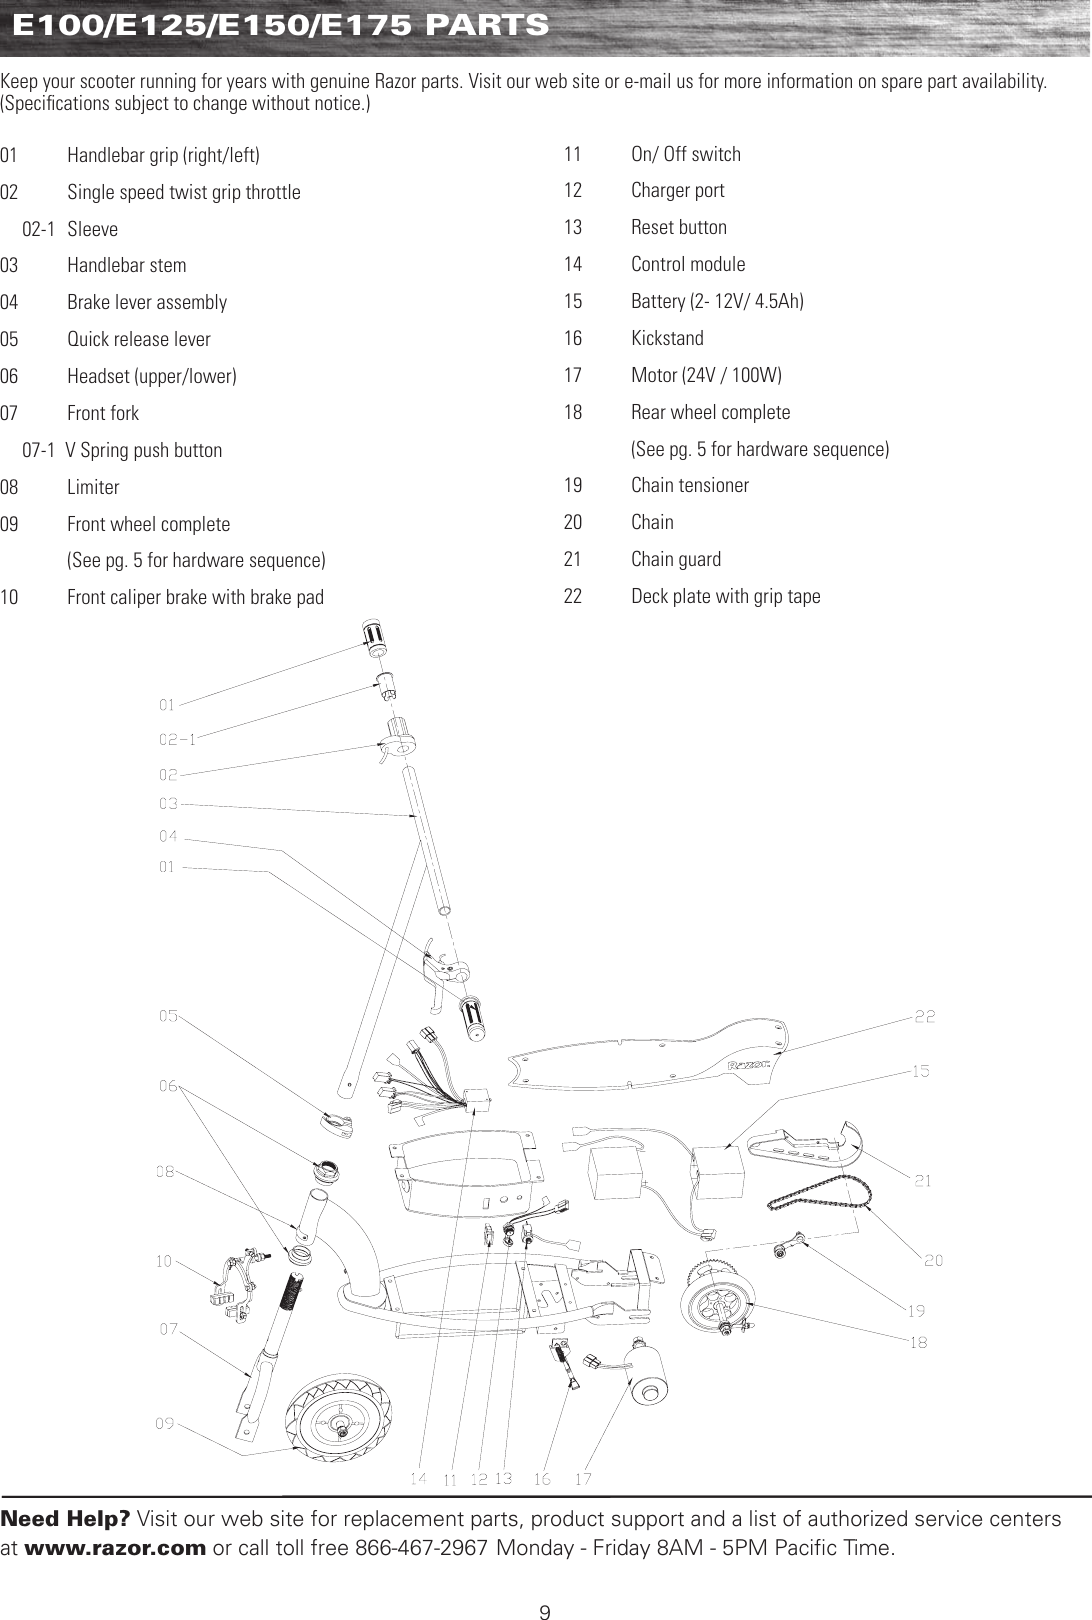 Razor Scooter E100 Users Manual Sweet Pea Wiring Diagram Page 10 Of 12